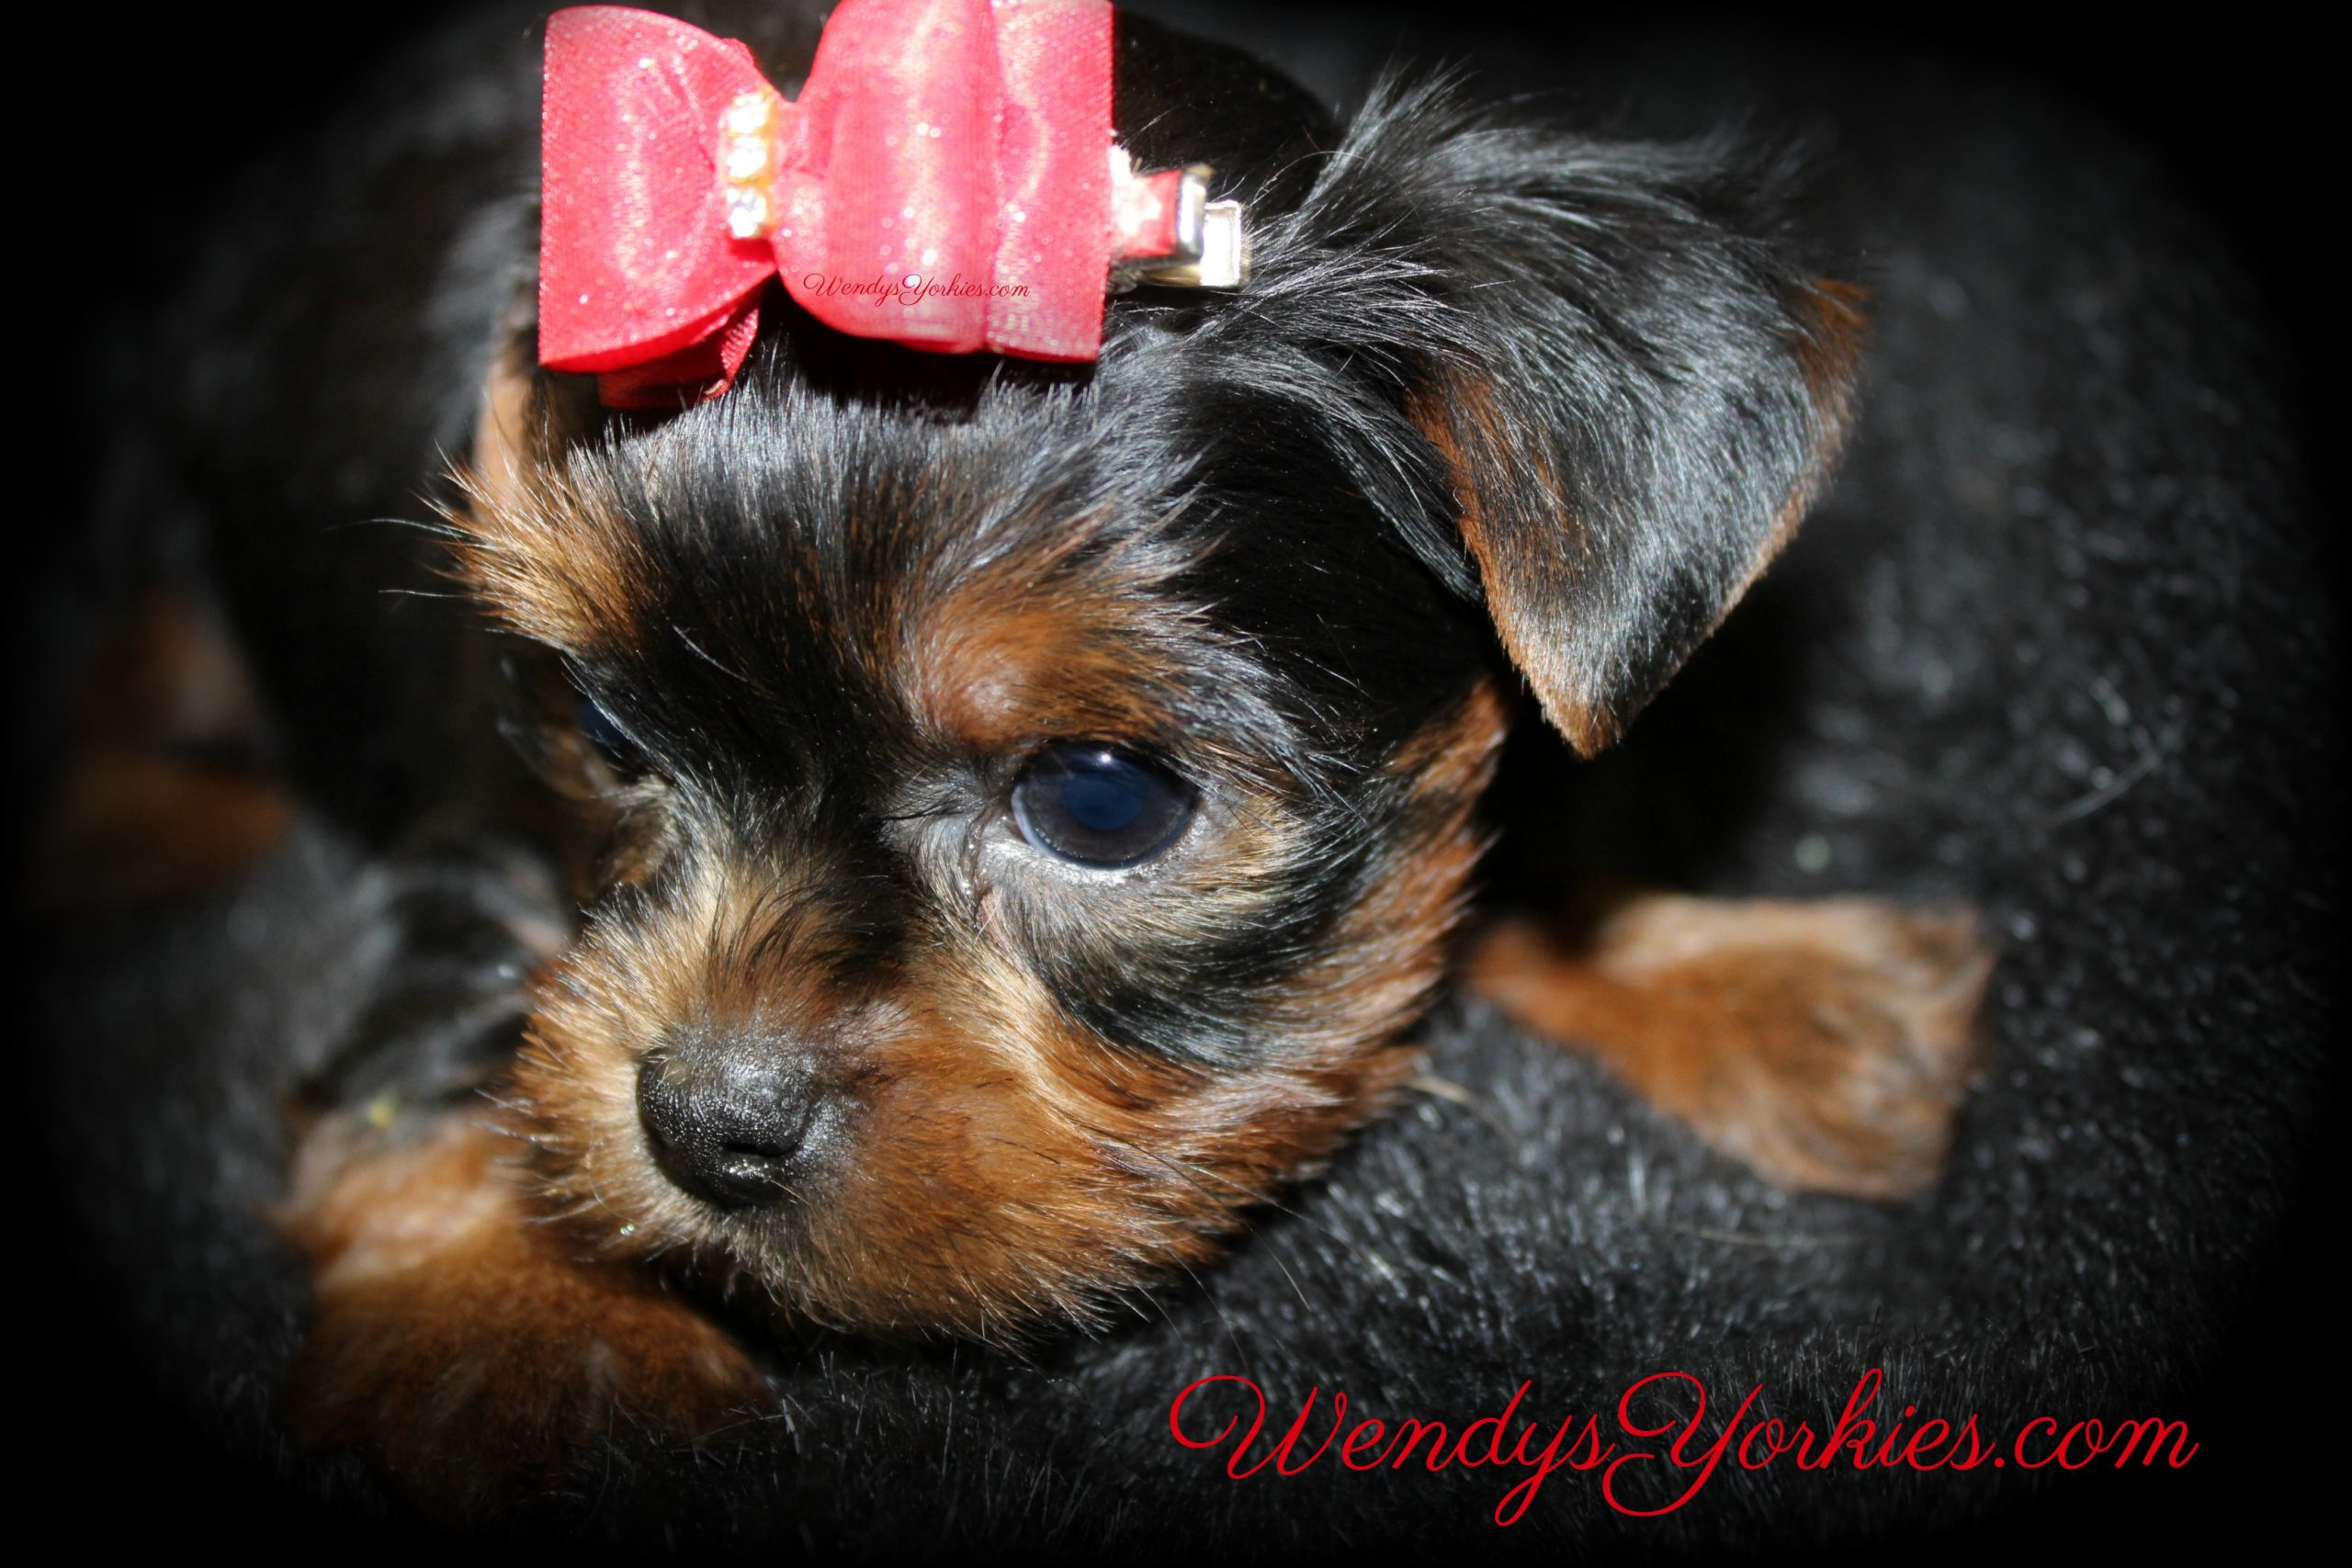 Yorkie profile, Male YOrkie puppy for sale, Cutest Yorkie, WendysYorkies.com